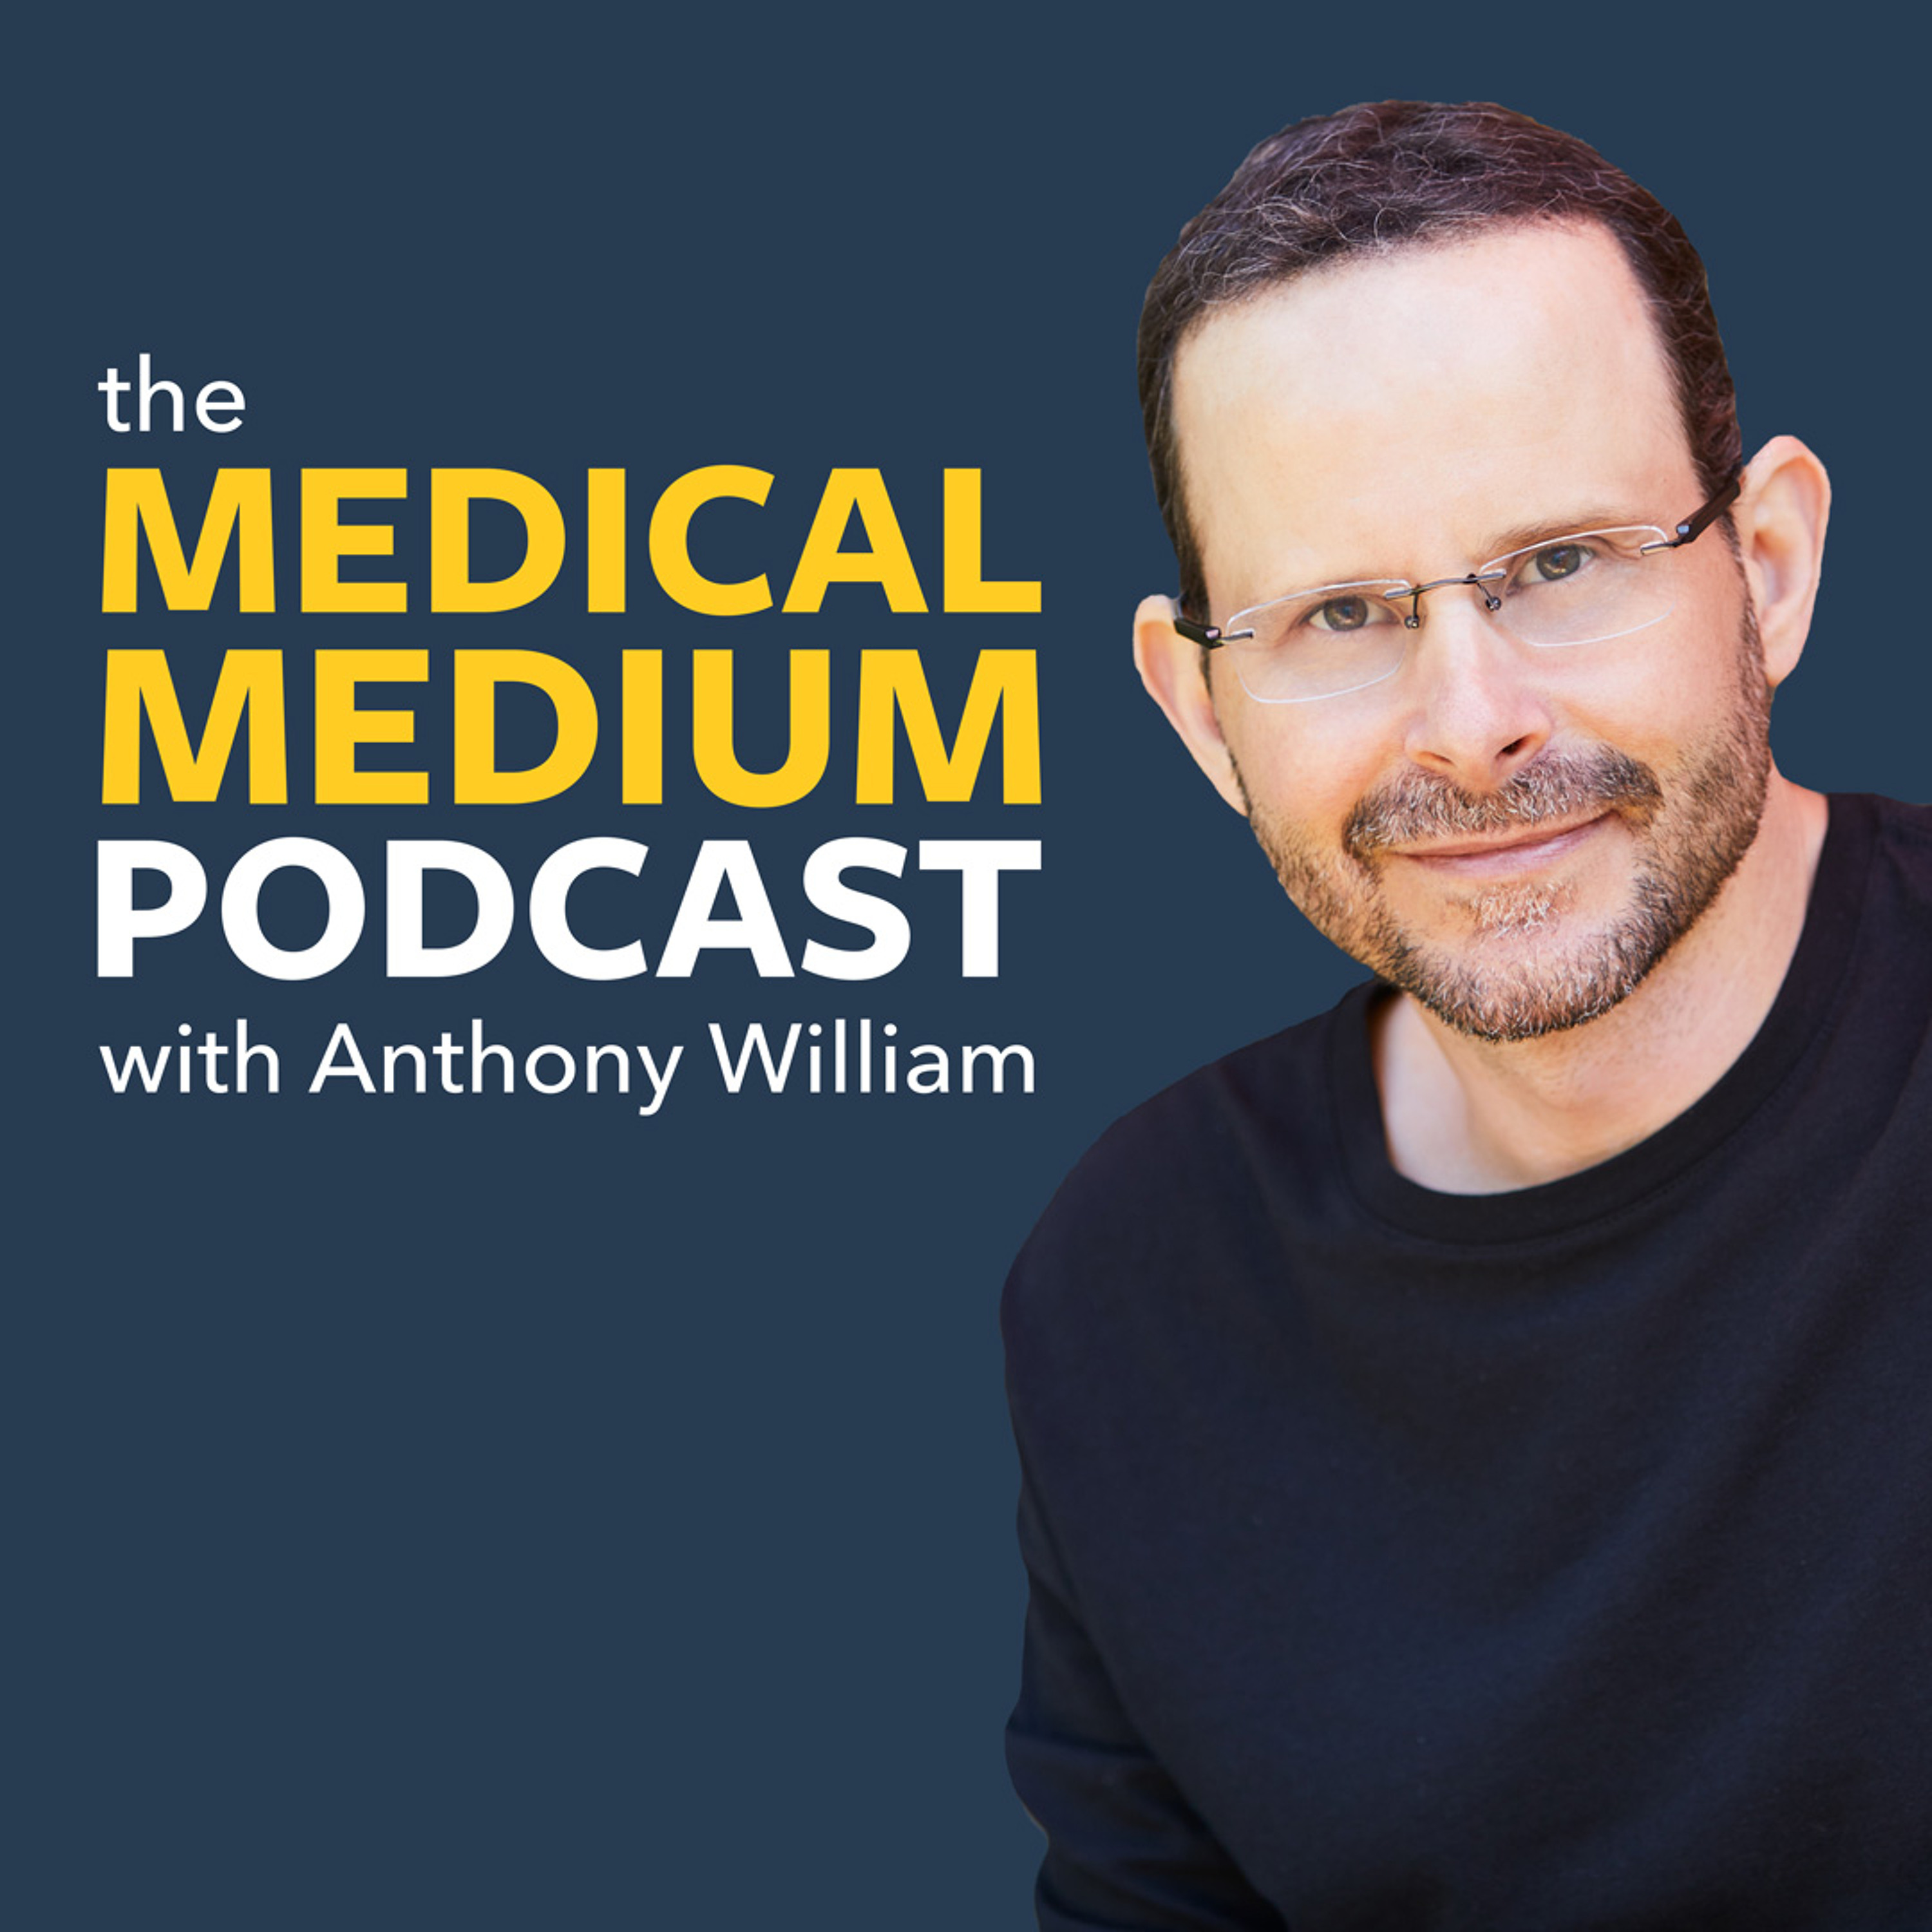 000 Medical Medium Podcast: Welcome